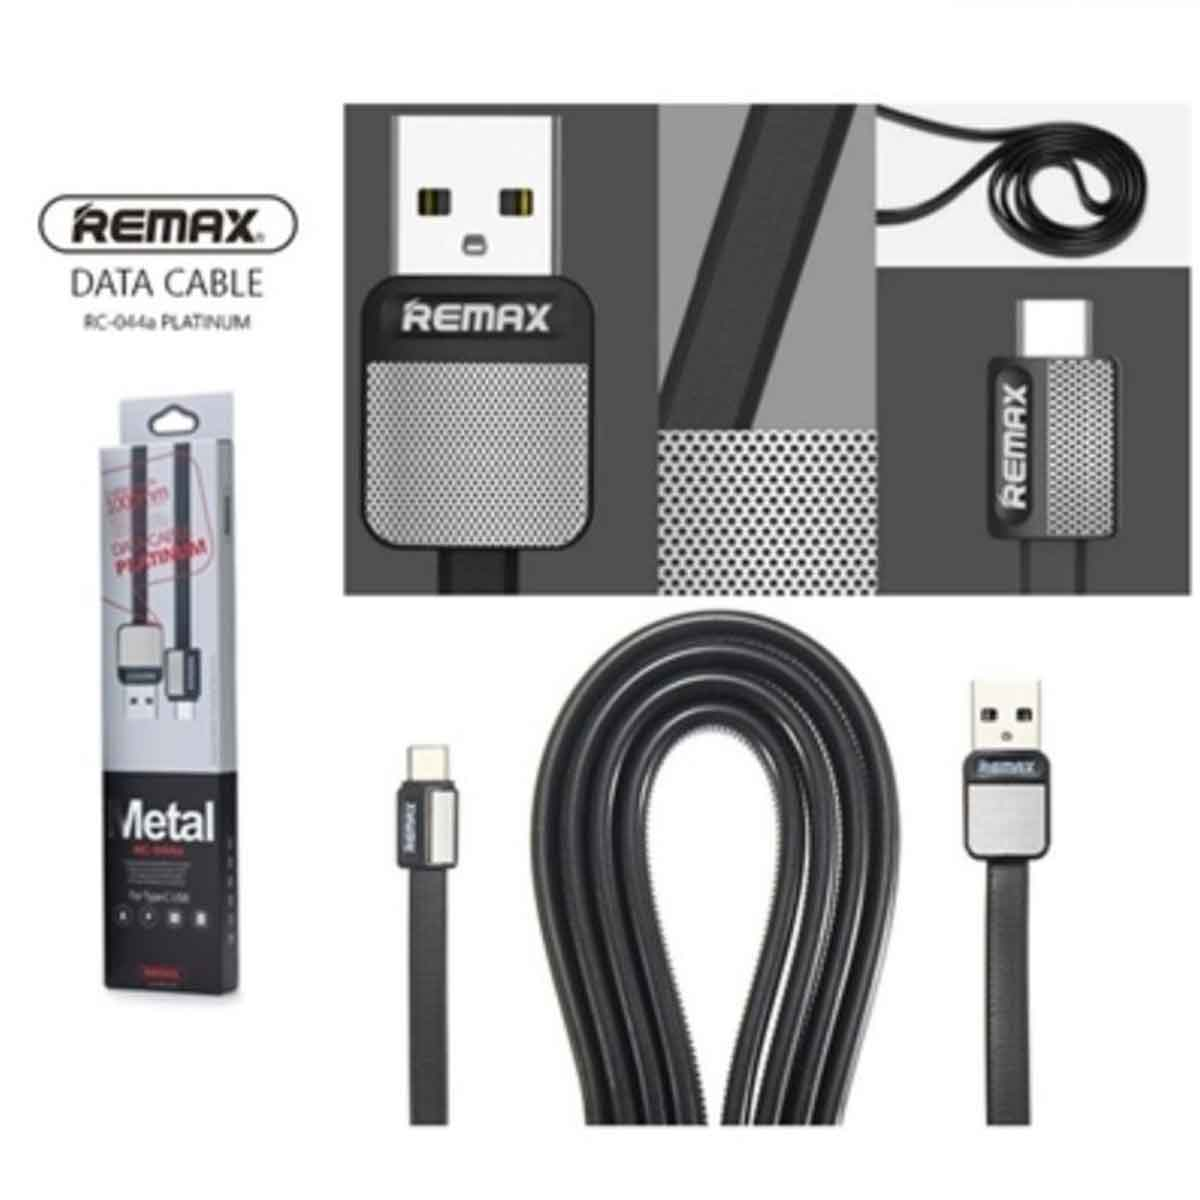 Remax Metal Data Cable